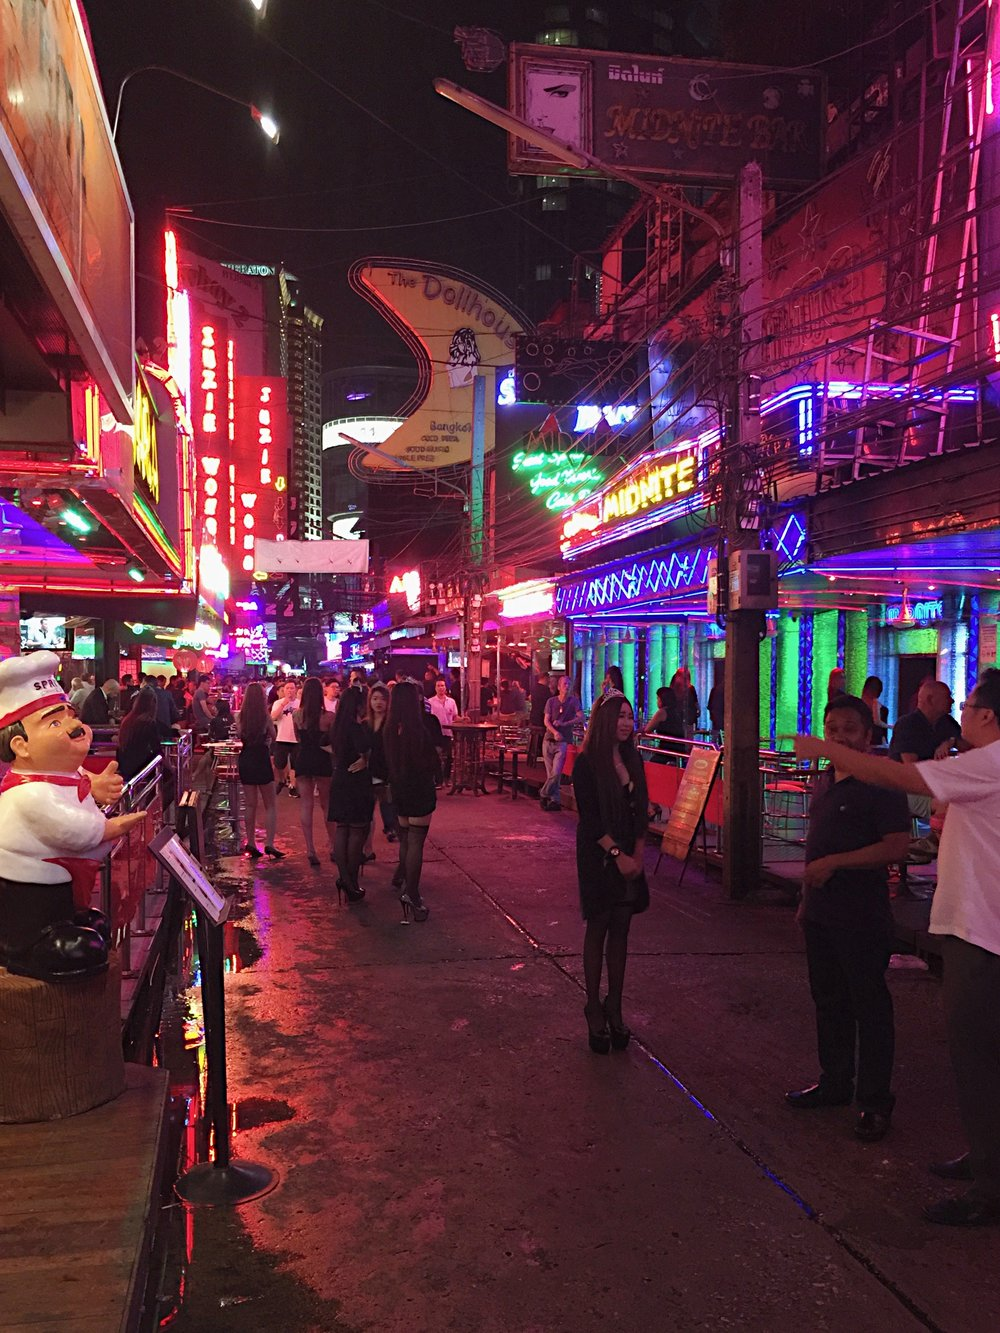 Soi Cowboy - one of Bangkok's main red light districts filled with go go bars